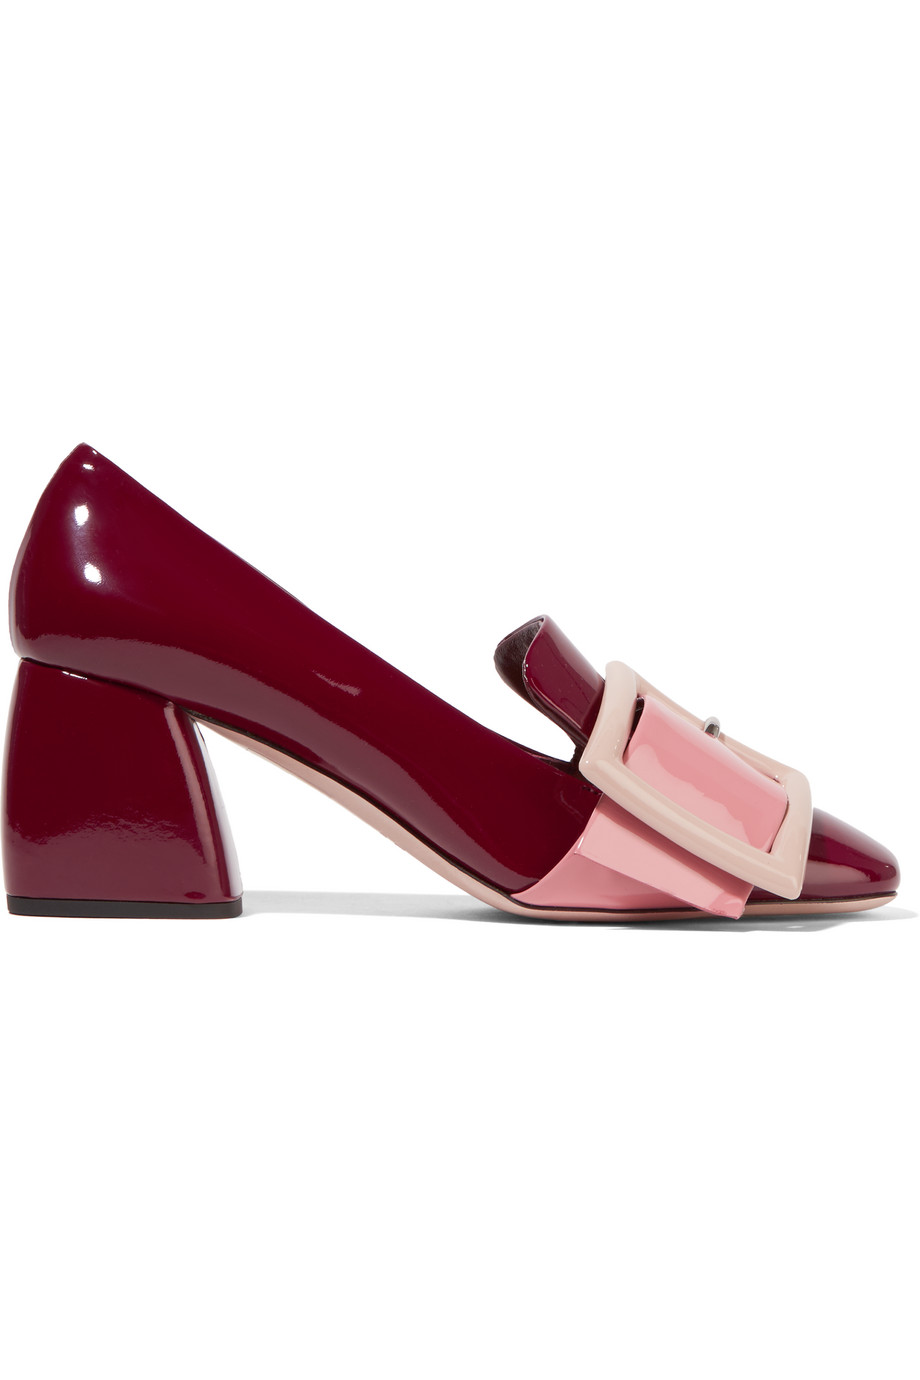 Miu Miu Buckled Patent-Leather Pumps, Burgundy/Pink, Women's US Size: 10, Size: 40.5